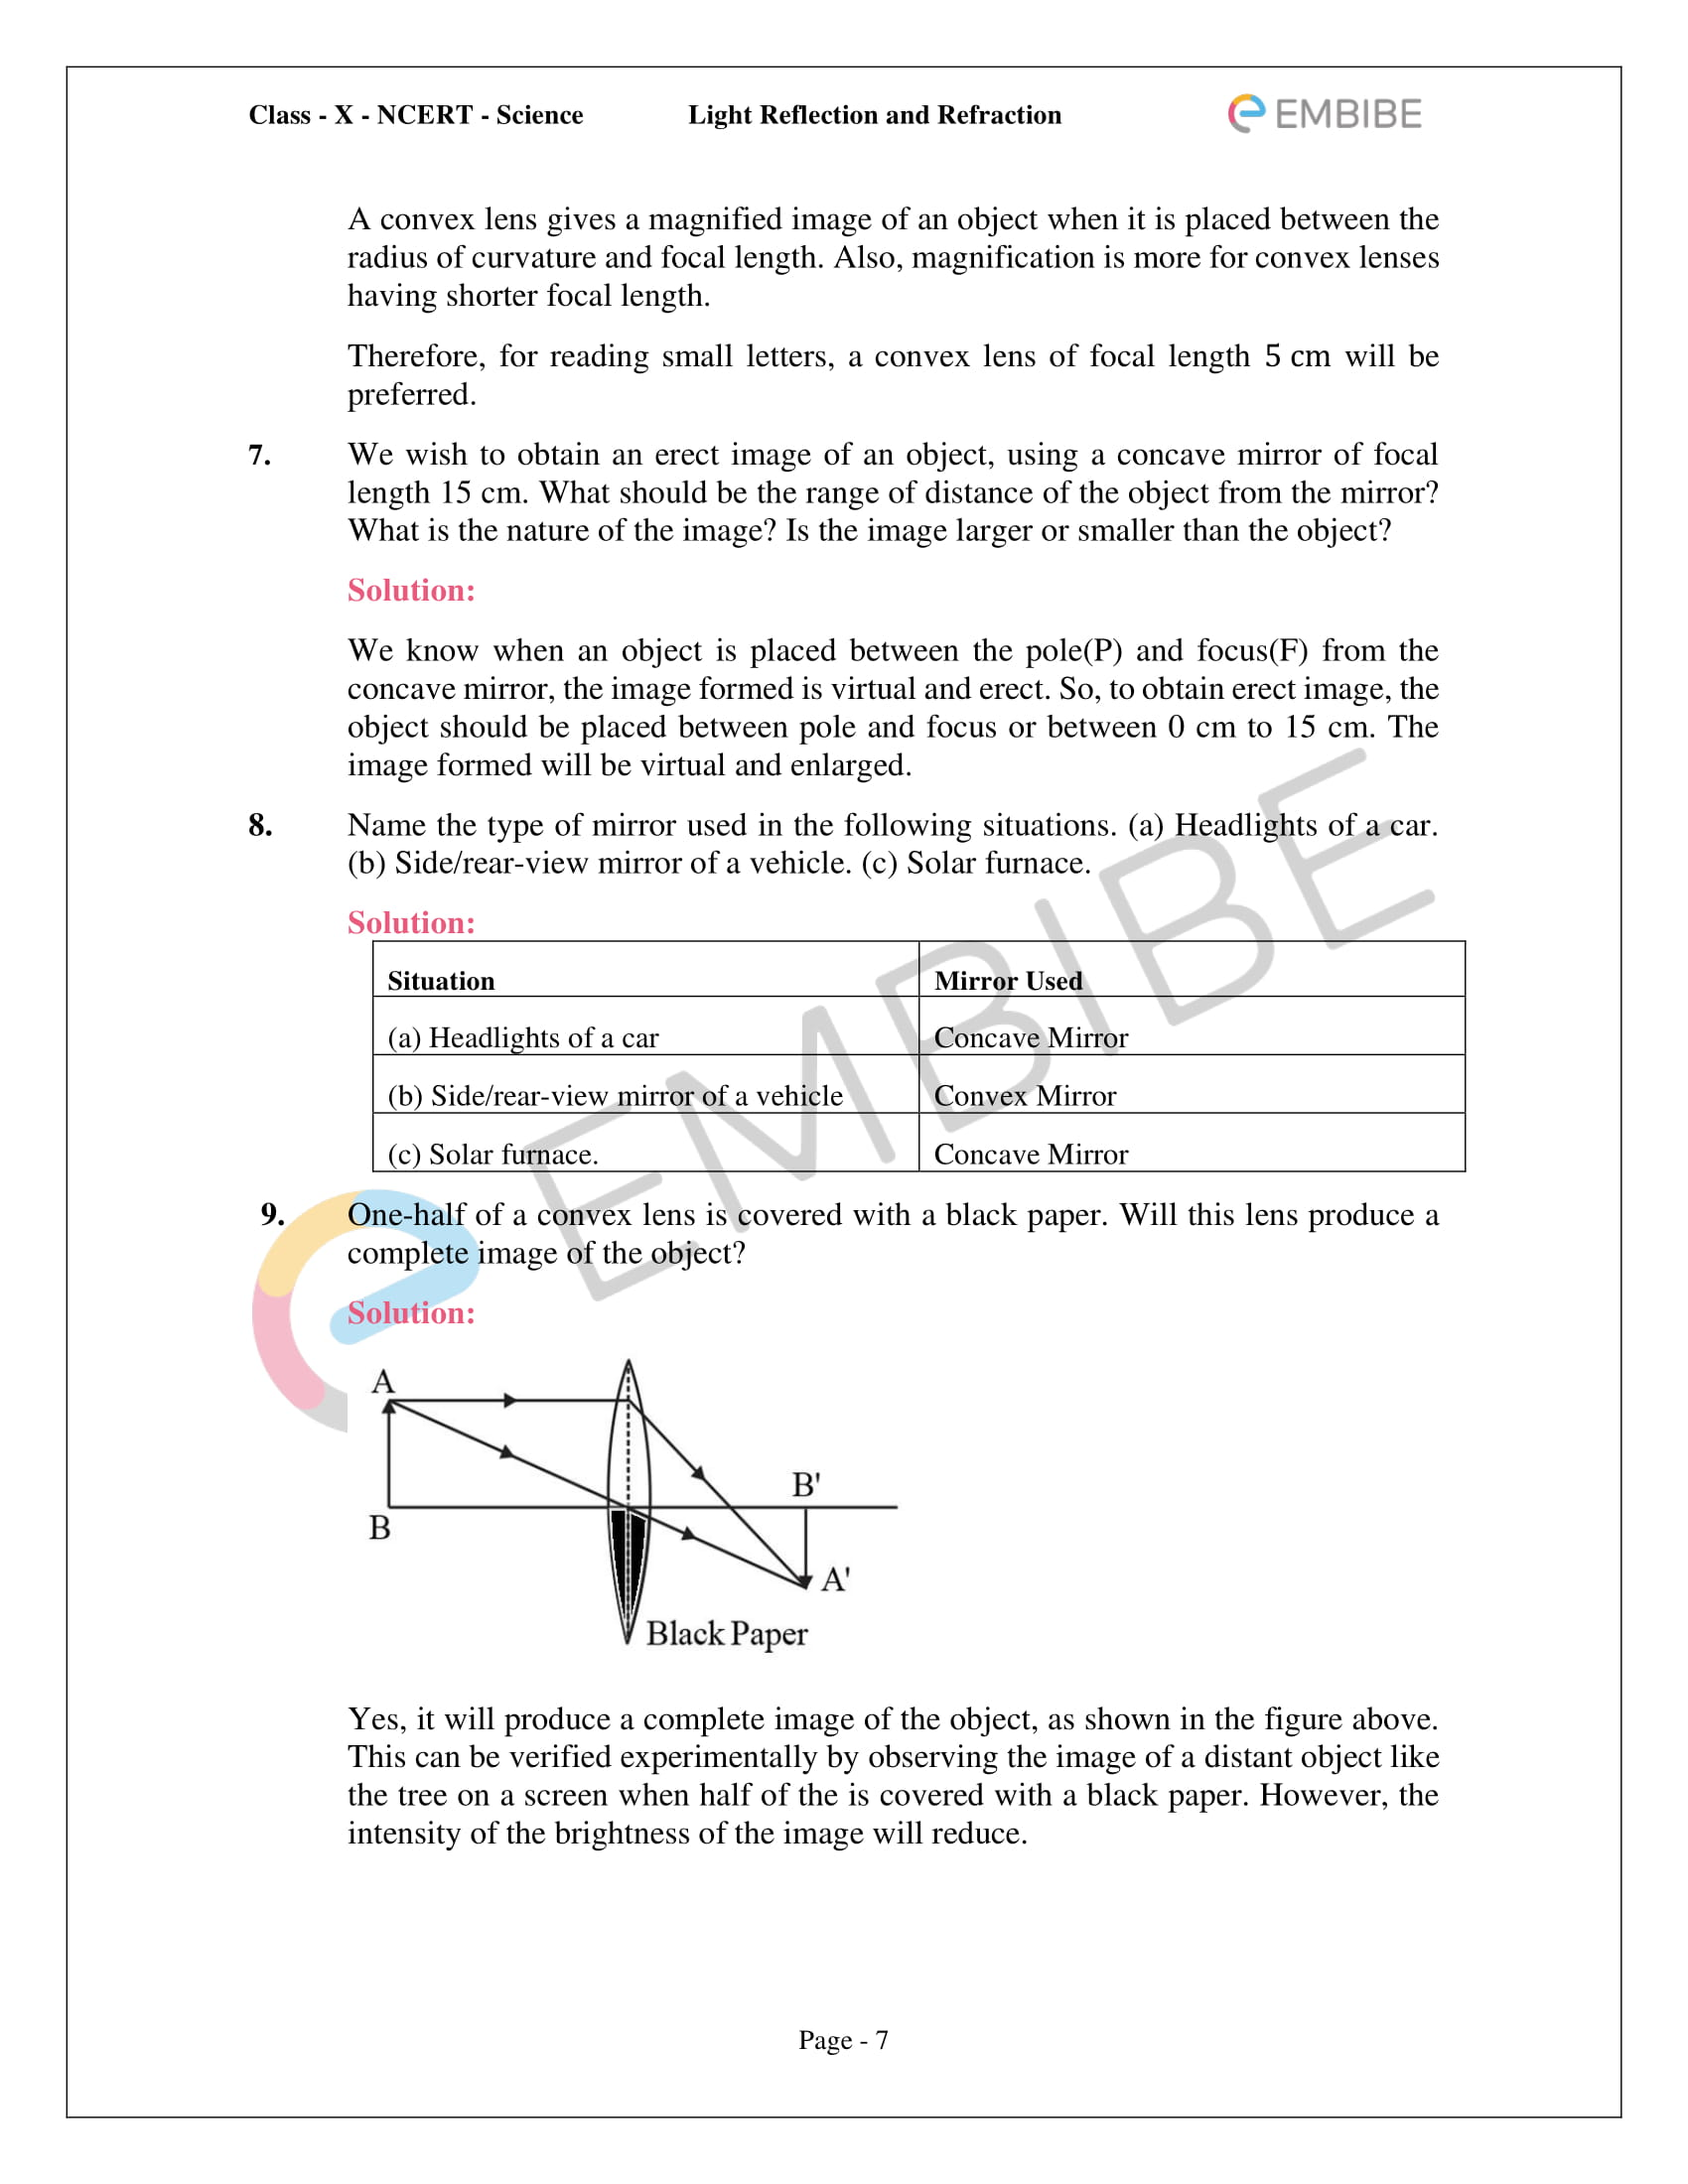 CBSE NCERT Solutions For Class 10 Science Chapter 10 - Light Reflection and Refraction - 7